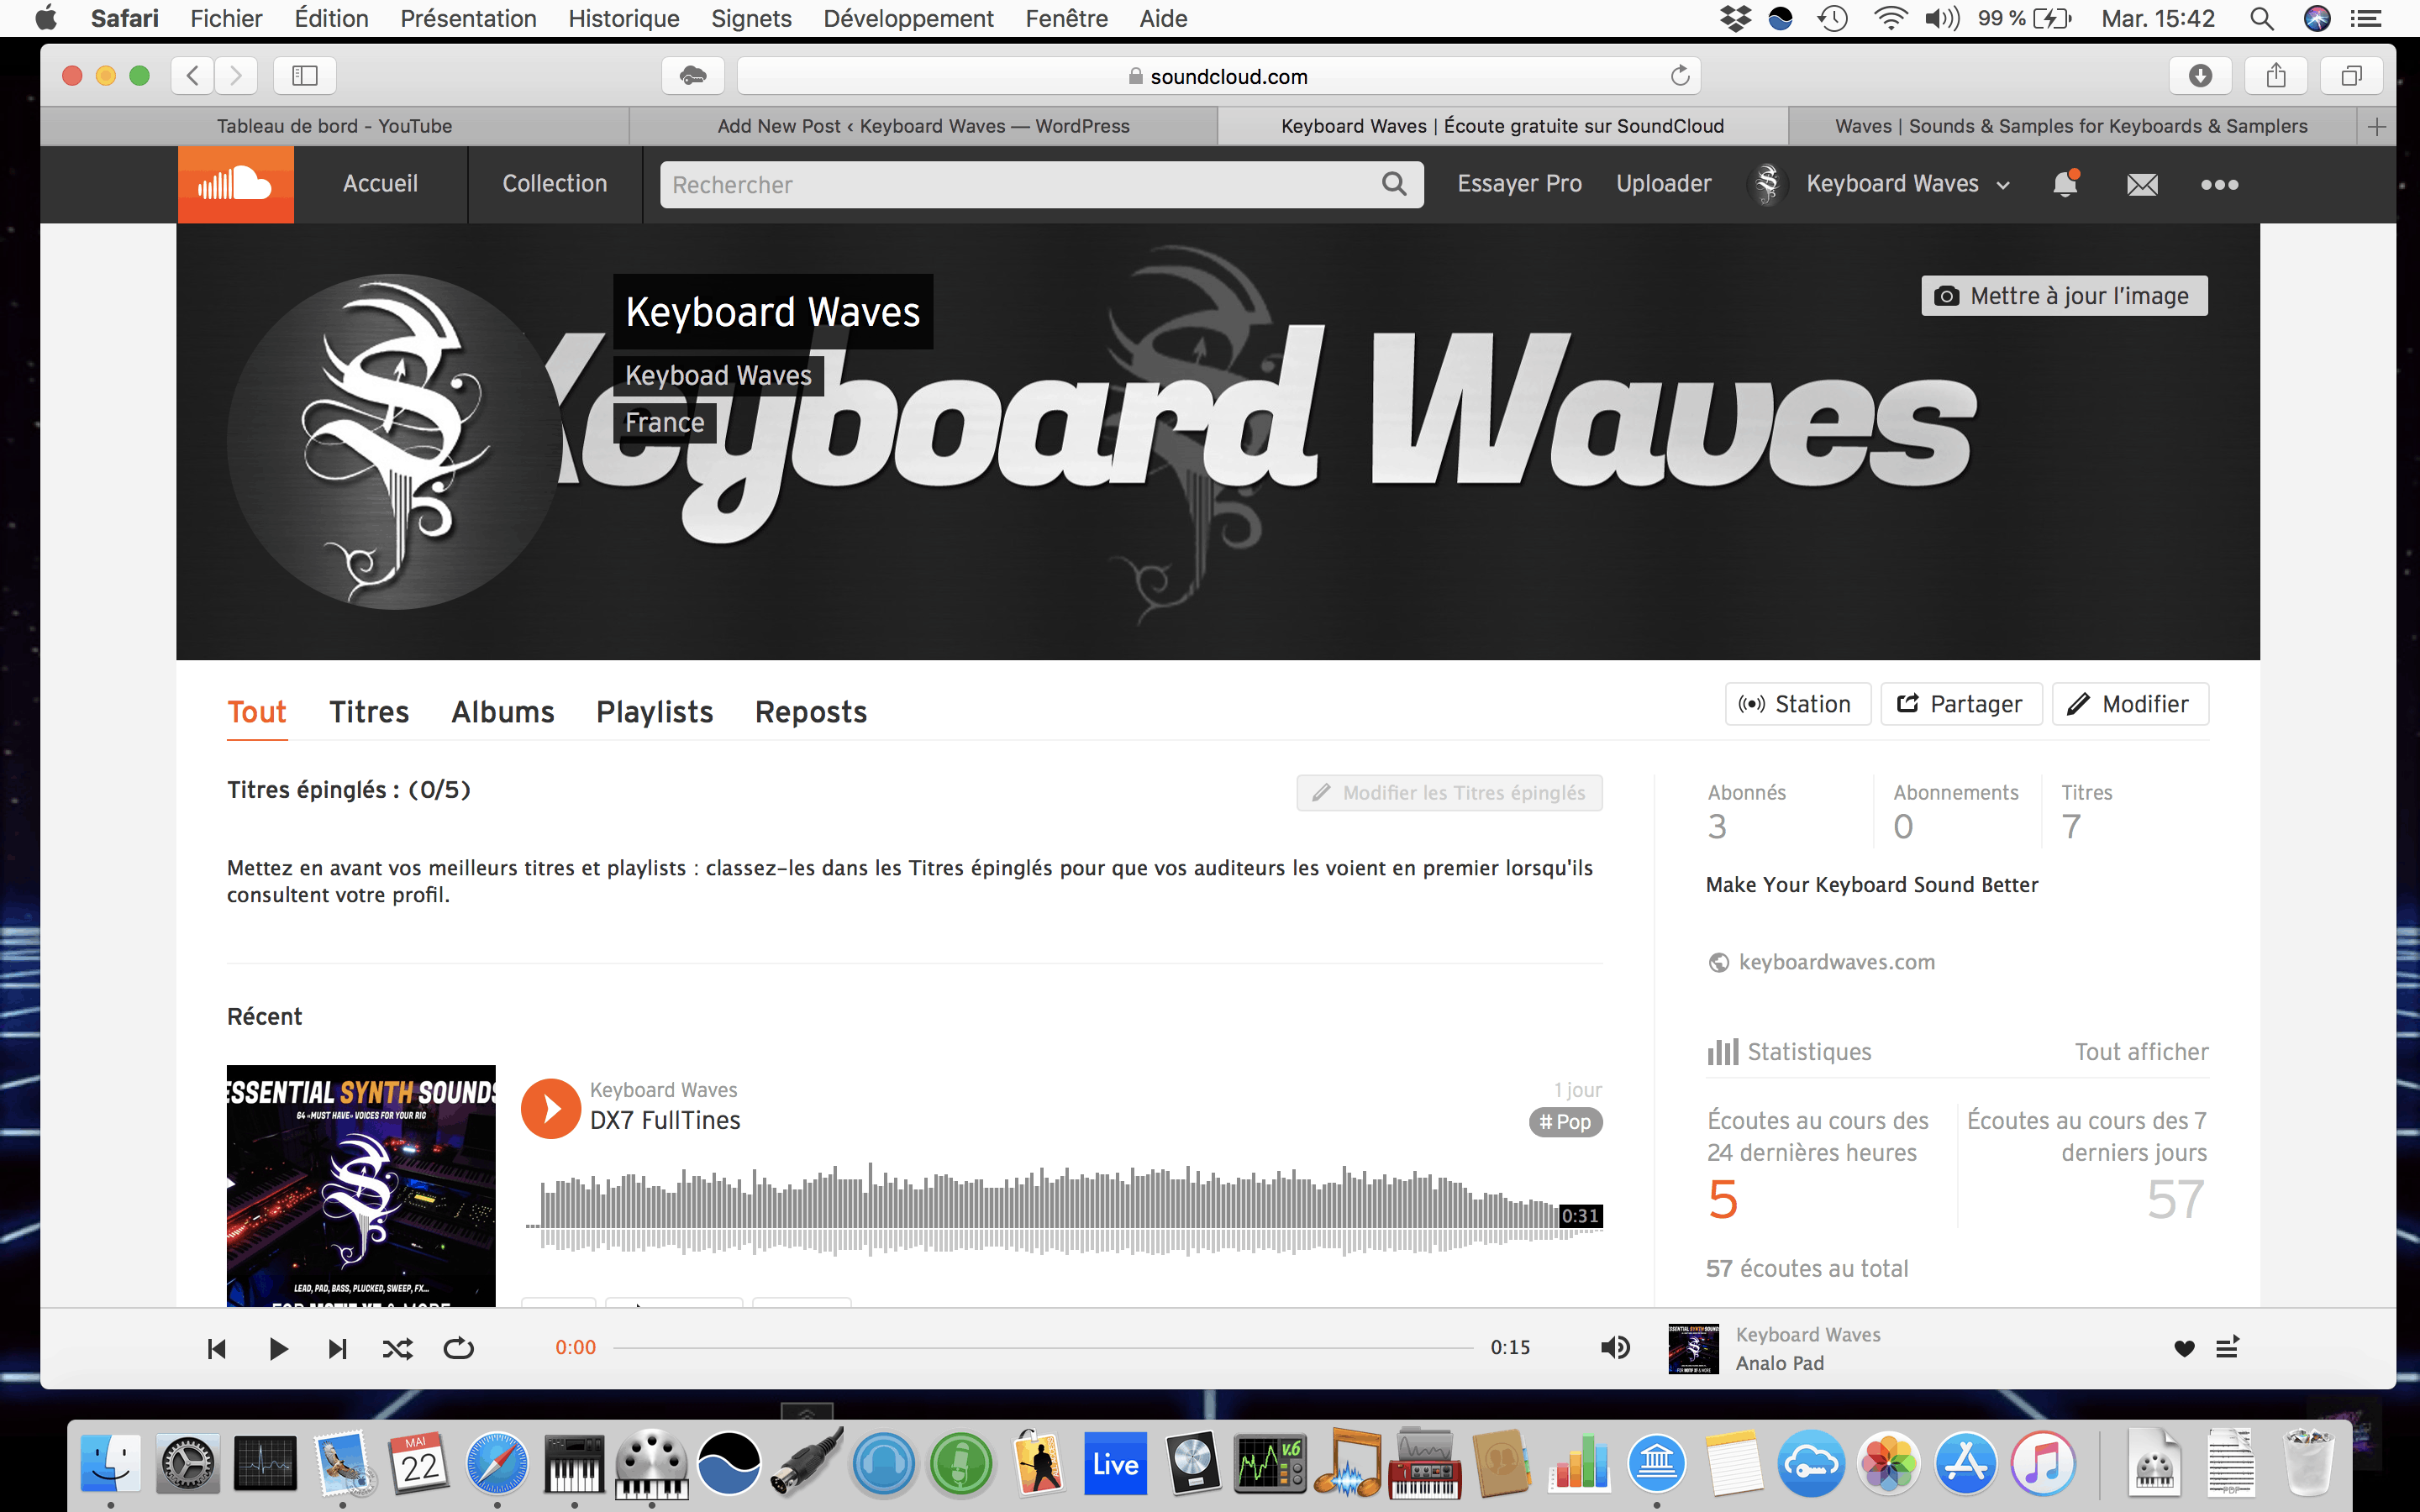 Keyboard Waves On SoundCloud